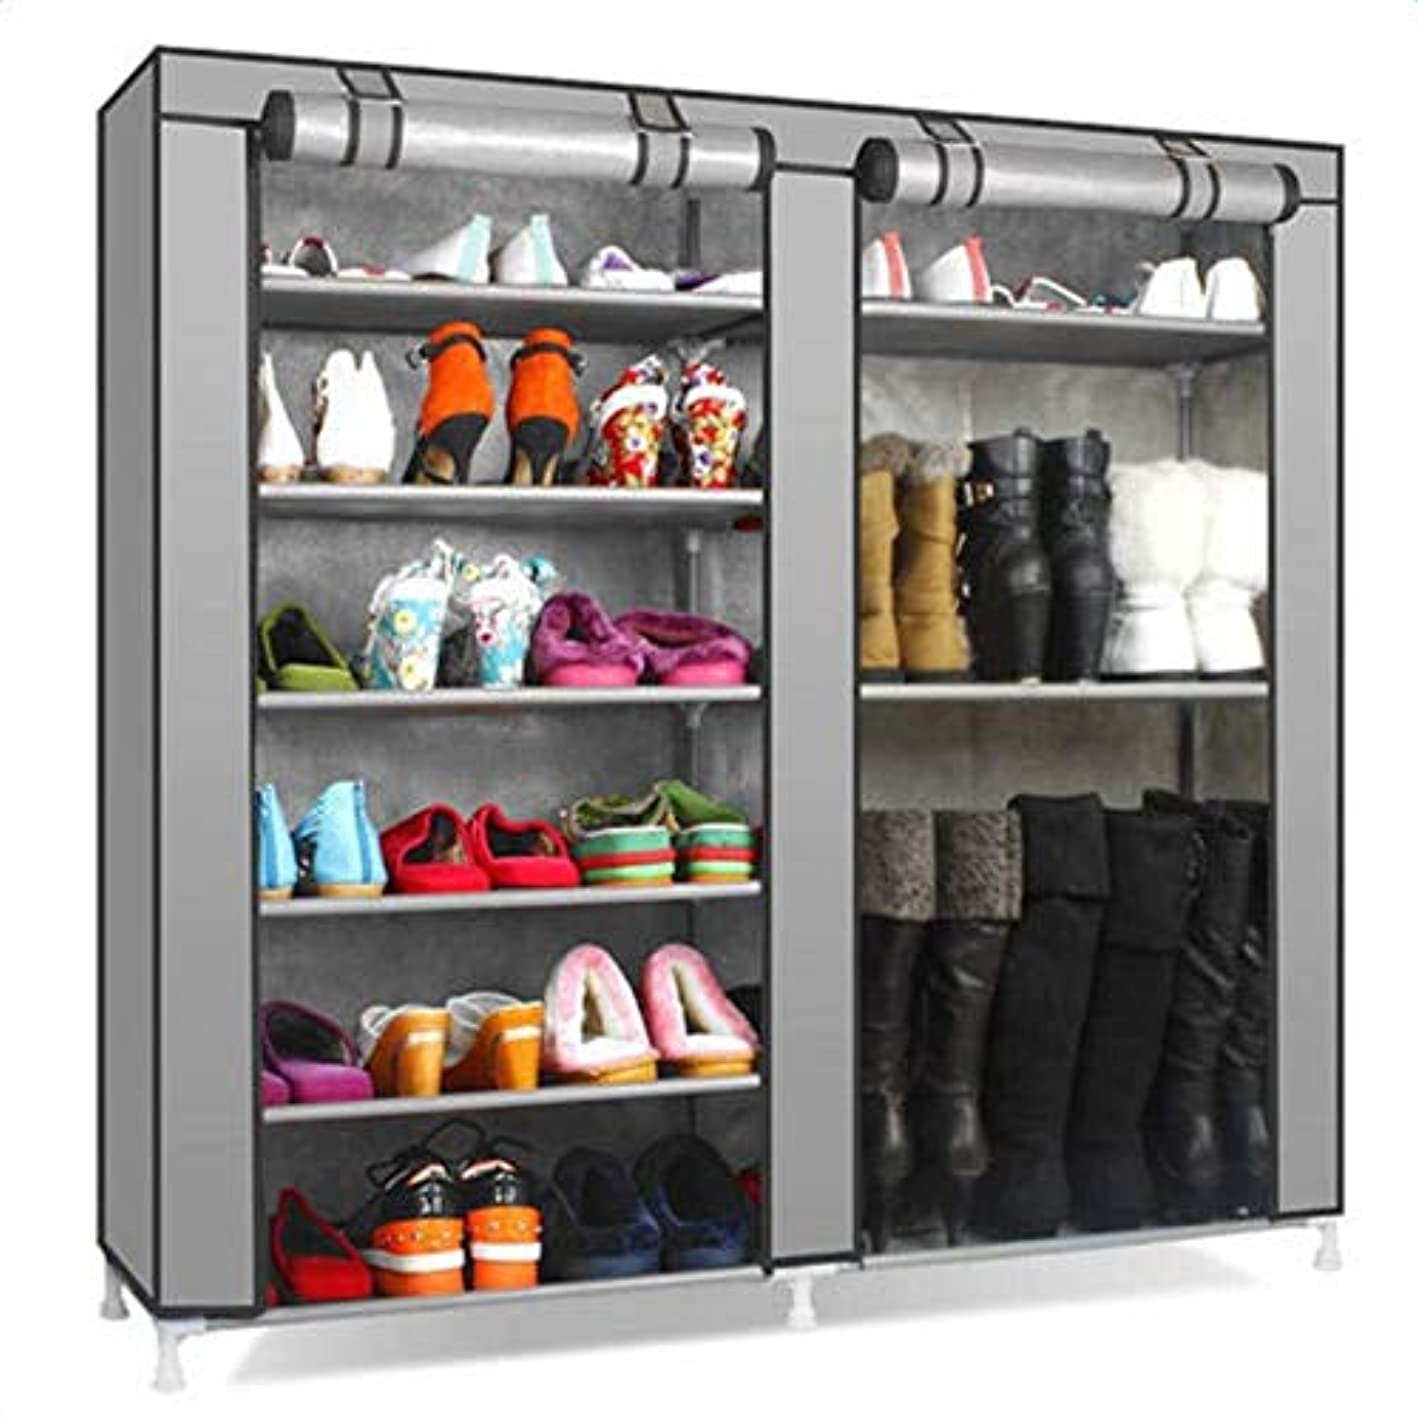 Ampblue Organizer Cabinet 9 Layer Shoe Rack Closet Plastic Grey Color